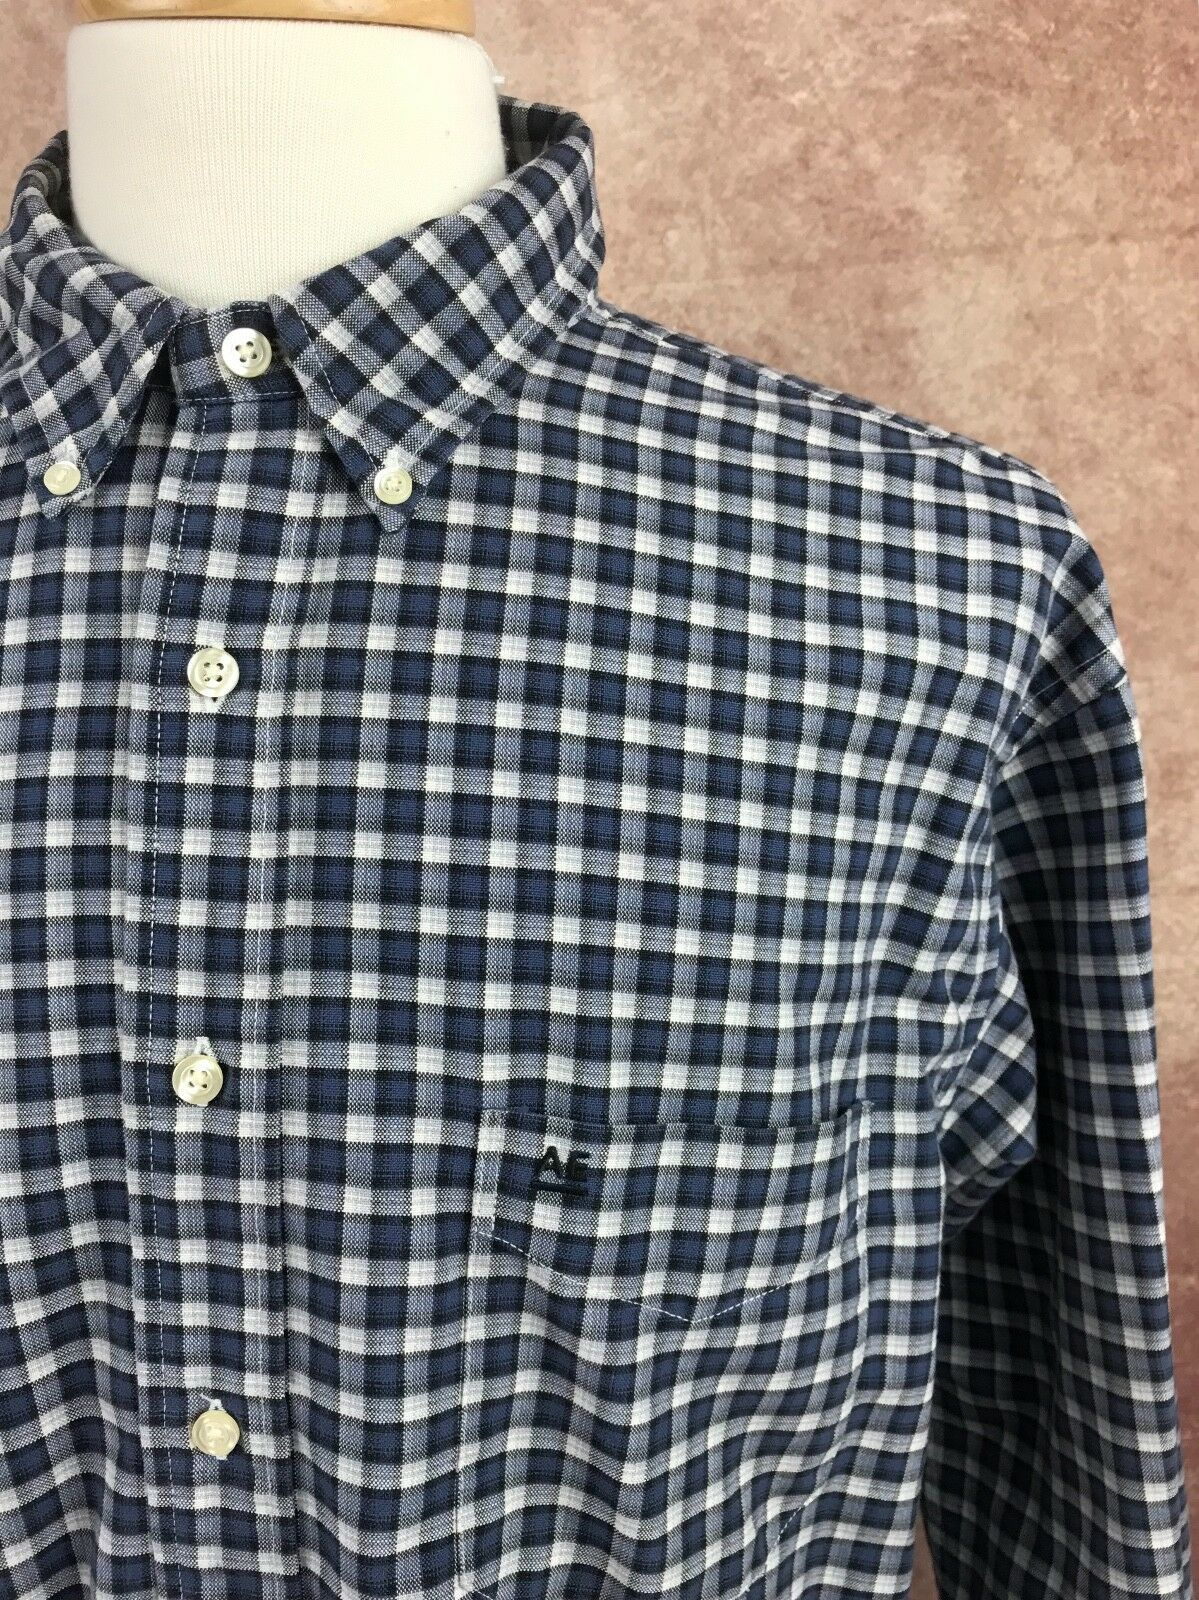 American Eagle Outfitters Men's Rugged Oxford Navy Blue White Check Shirt Large image 2